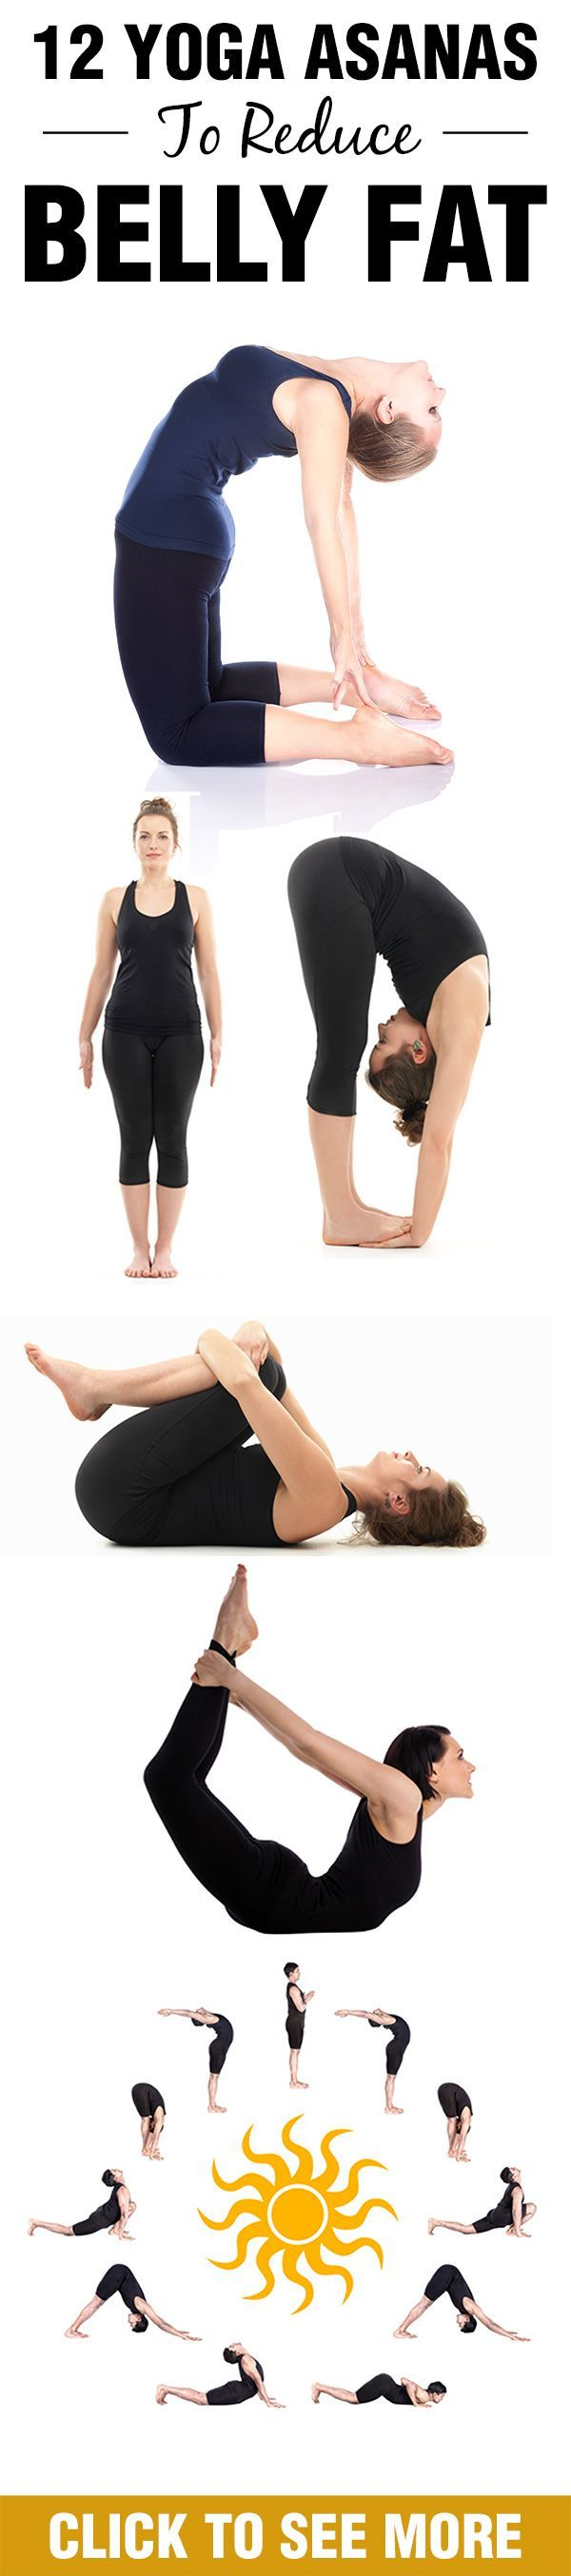 12 Simple Yoga Asanas To Reduce Belly Fat | Health, Losing ...